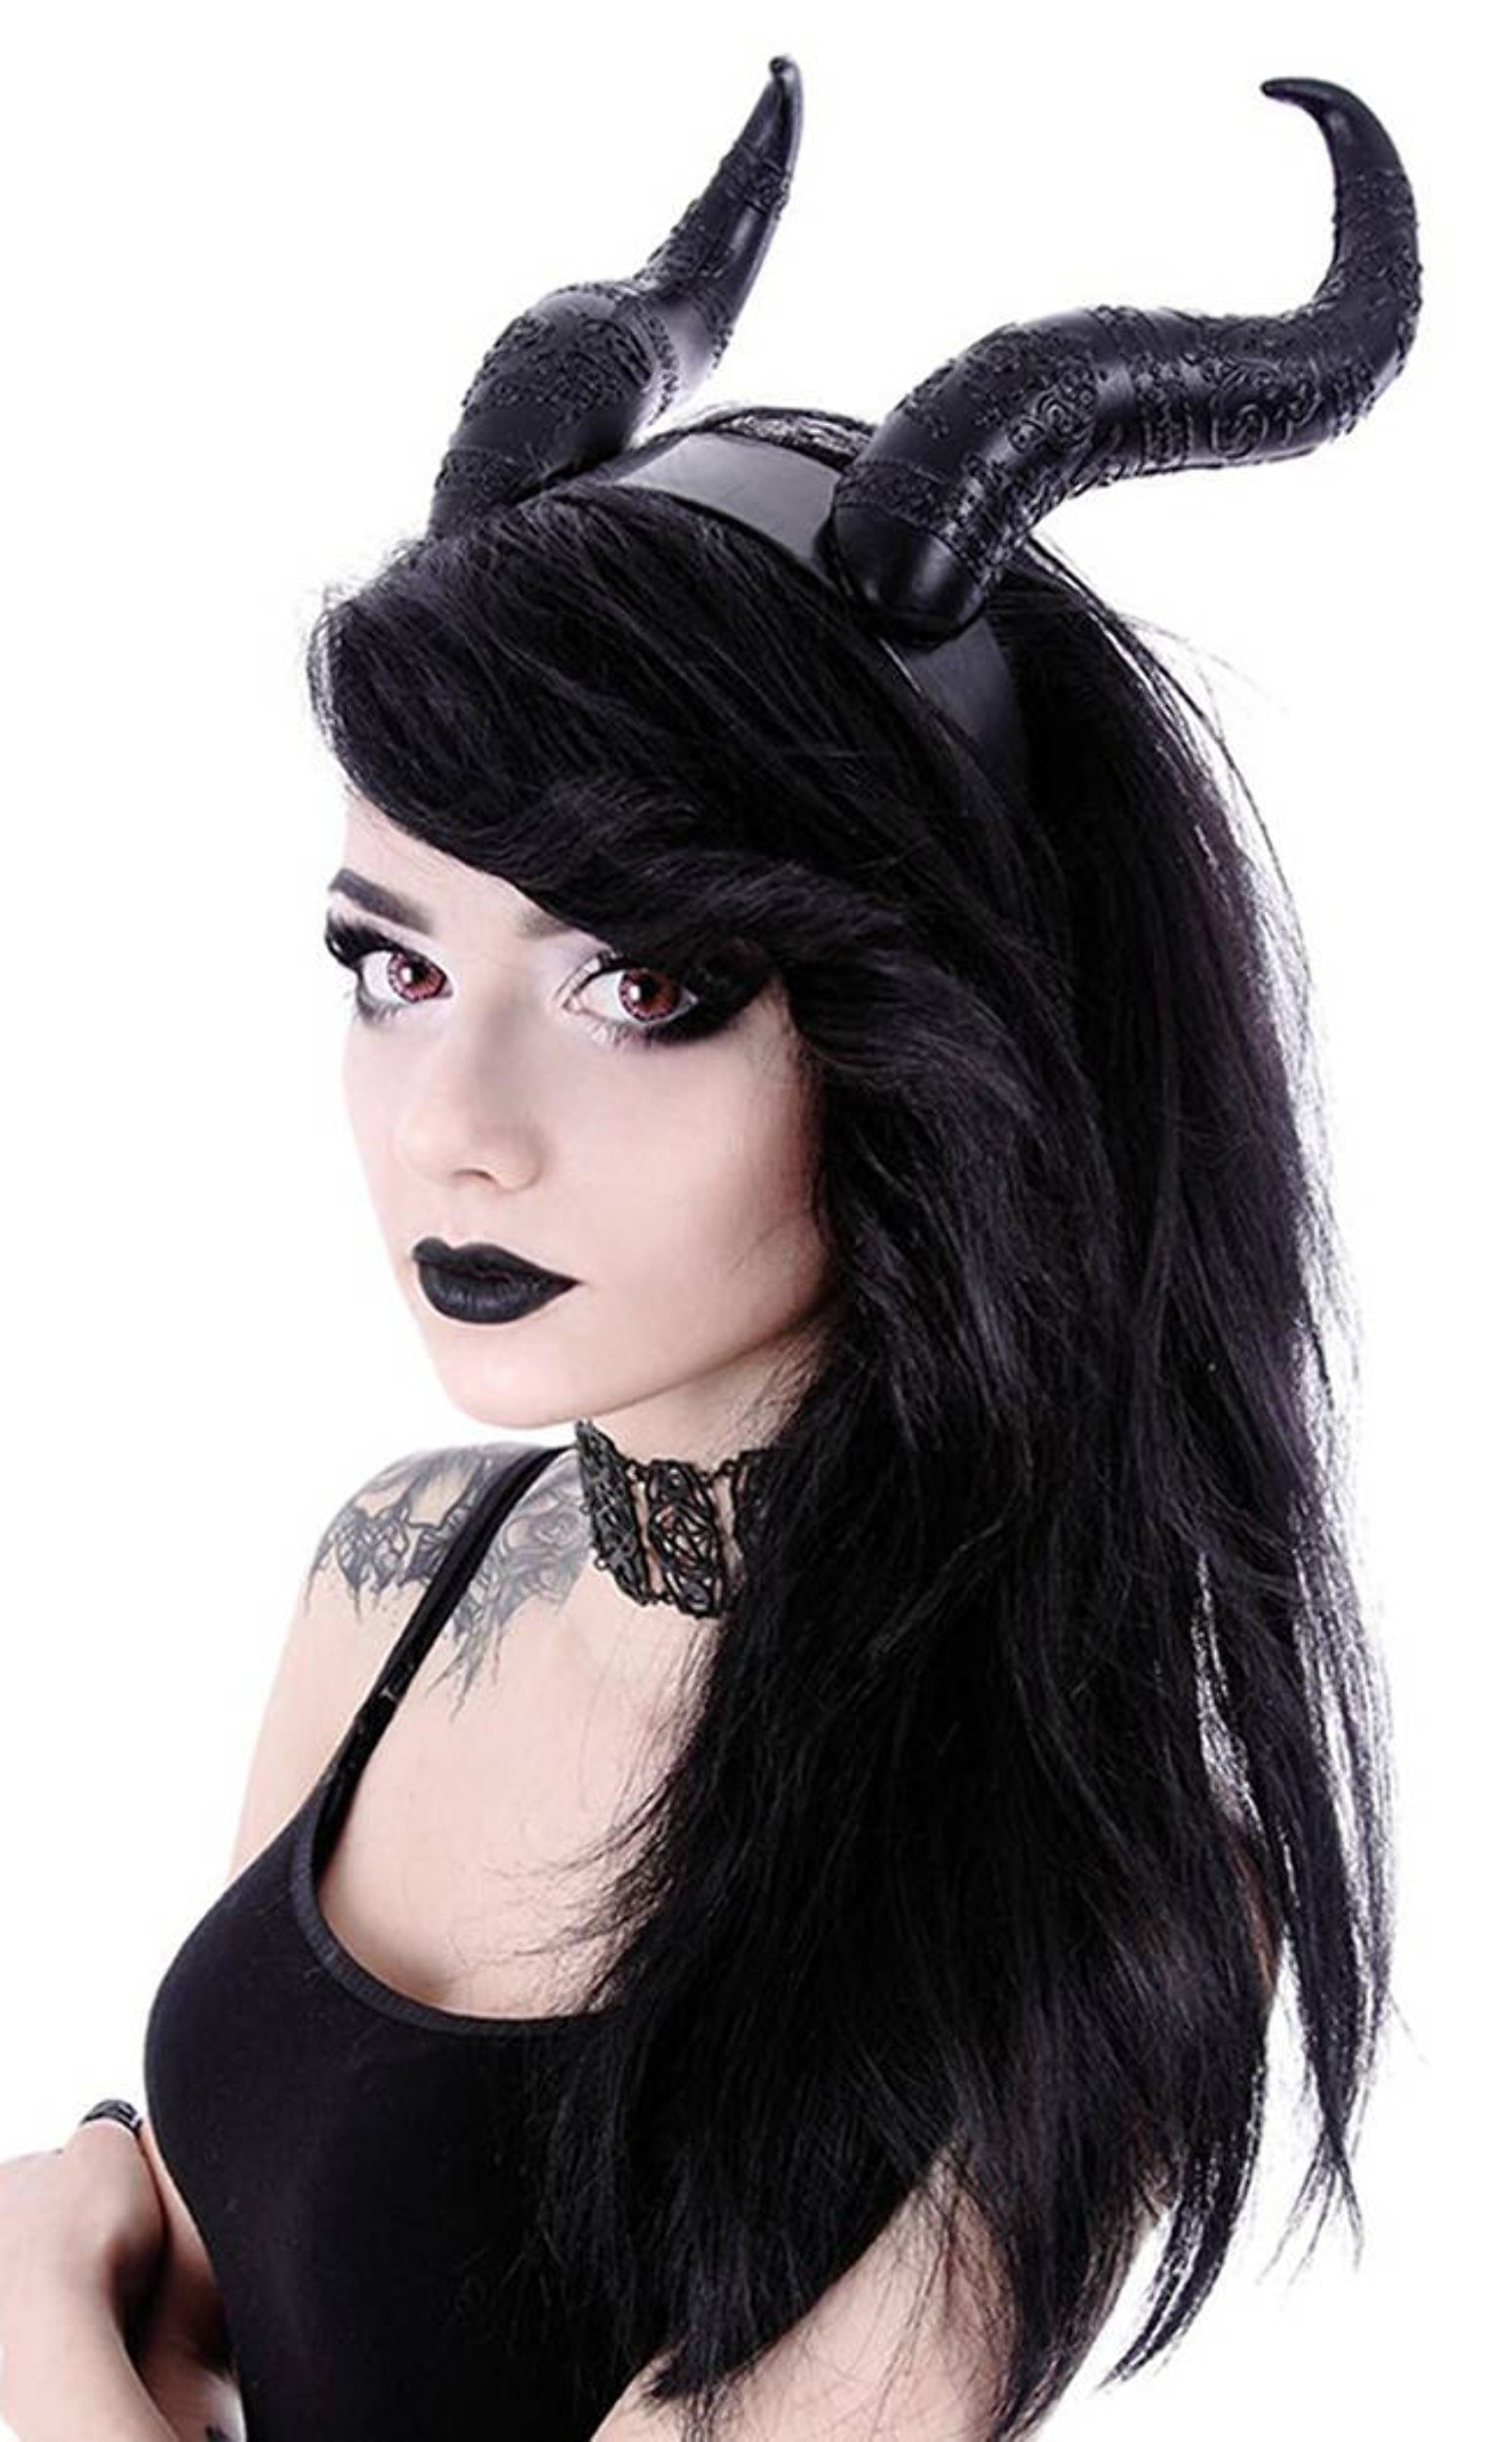 Restyle Gothic Hair Headband Maleficent Horns Nu Goth - Black (One-Size)